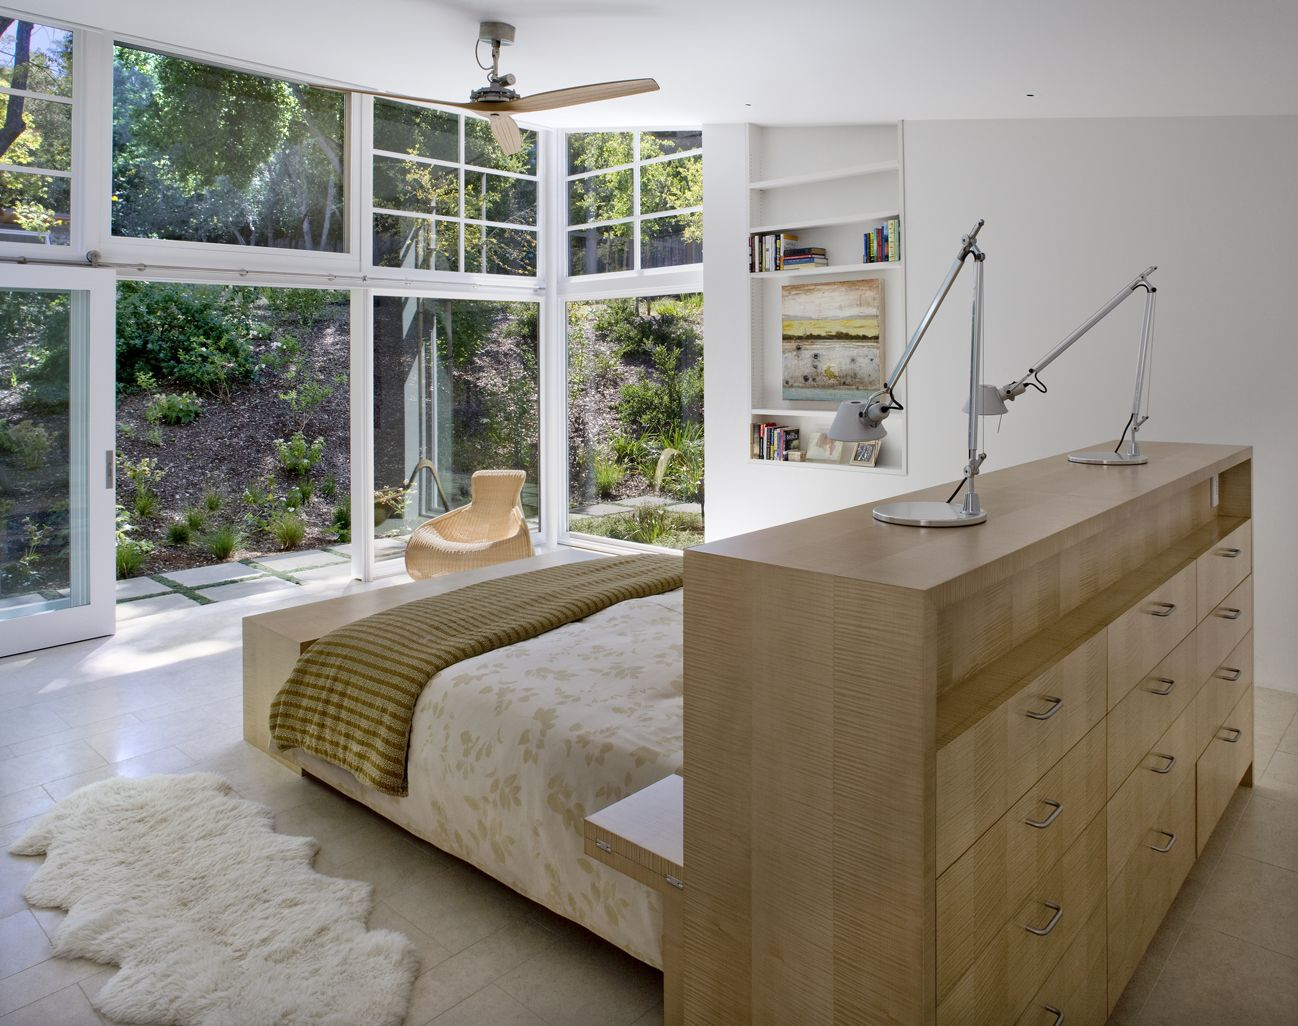 Bedroom Credenza As A Headboard   Atherton Residence, Turnbull Griffin  Haesloop Architects